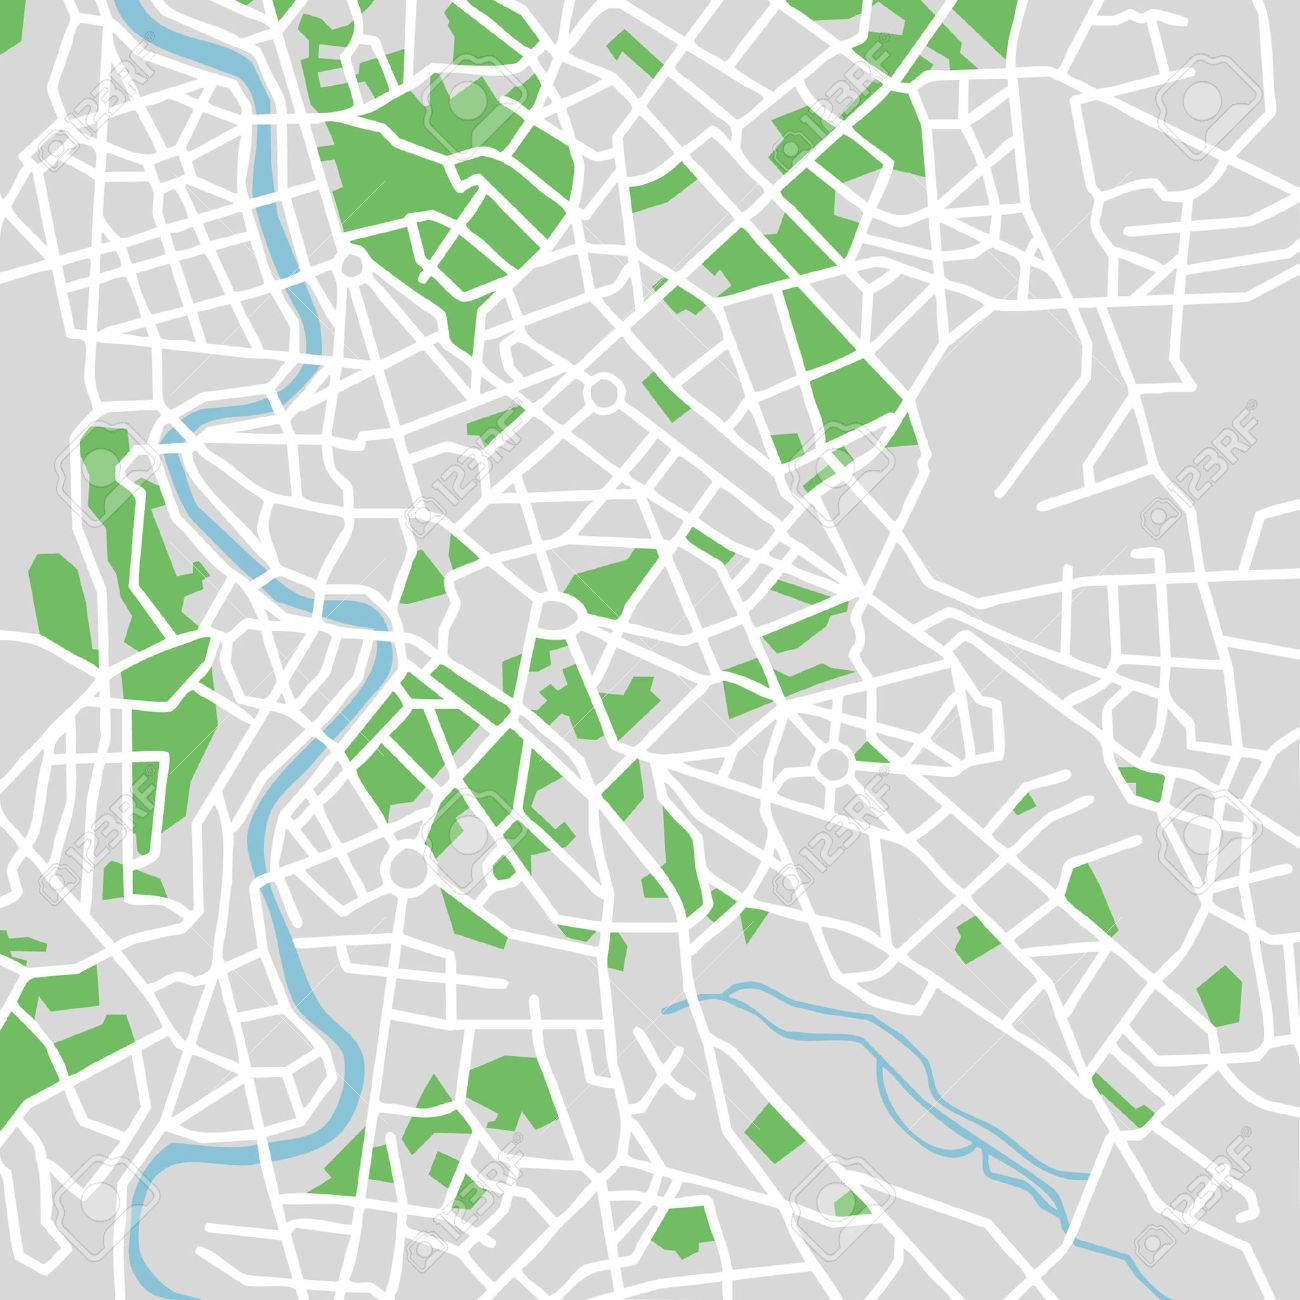 Vector pattern city map of Rome, Italy. on city of salvador brazil map, city of izmir turkey map, city of monterrey mexico map, verona italy map, city of spain map, city of tegucigalpa honduras map, city of manila philippines map, rome hop on map, city of belgrade serbia map, rome city tourist map, city of manaus brazil map, city of reykjavik iceland map, city of beijing china map, city of calgary canada map, city of germany map, city of los angeles california map, city of marseille france map, city of zurich switzerland map, city of caracas venezuela map, city of buenos aires argentina map,